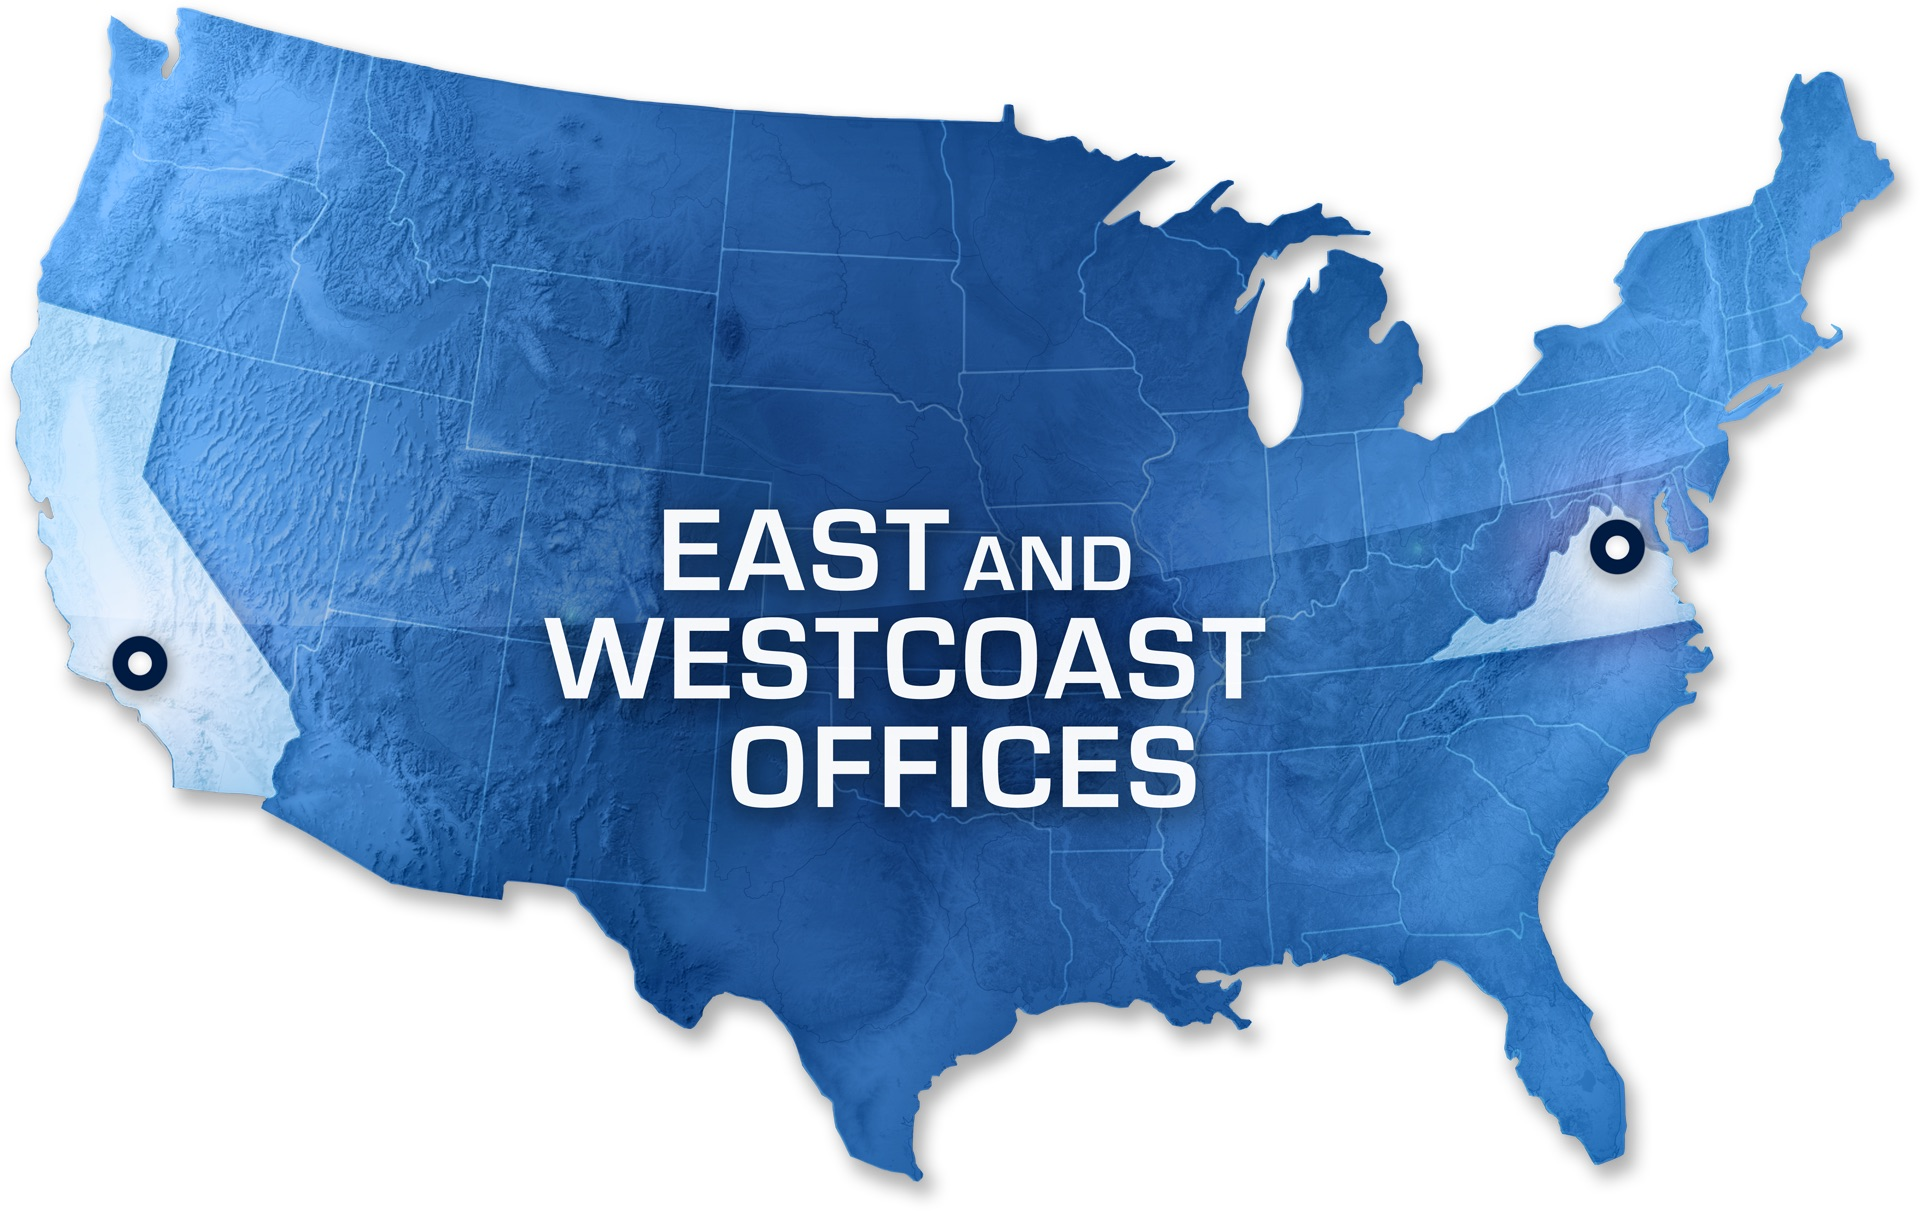 East and West Coast Offices